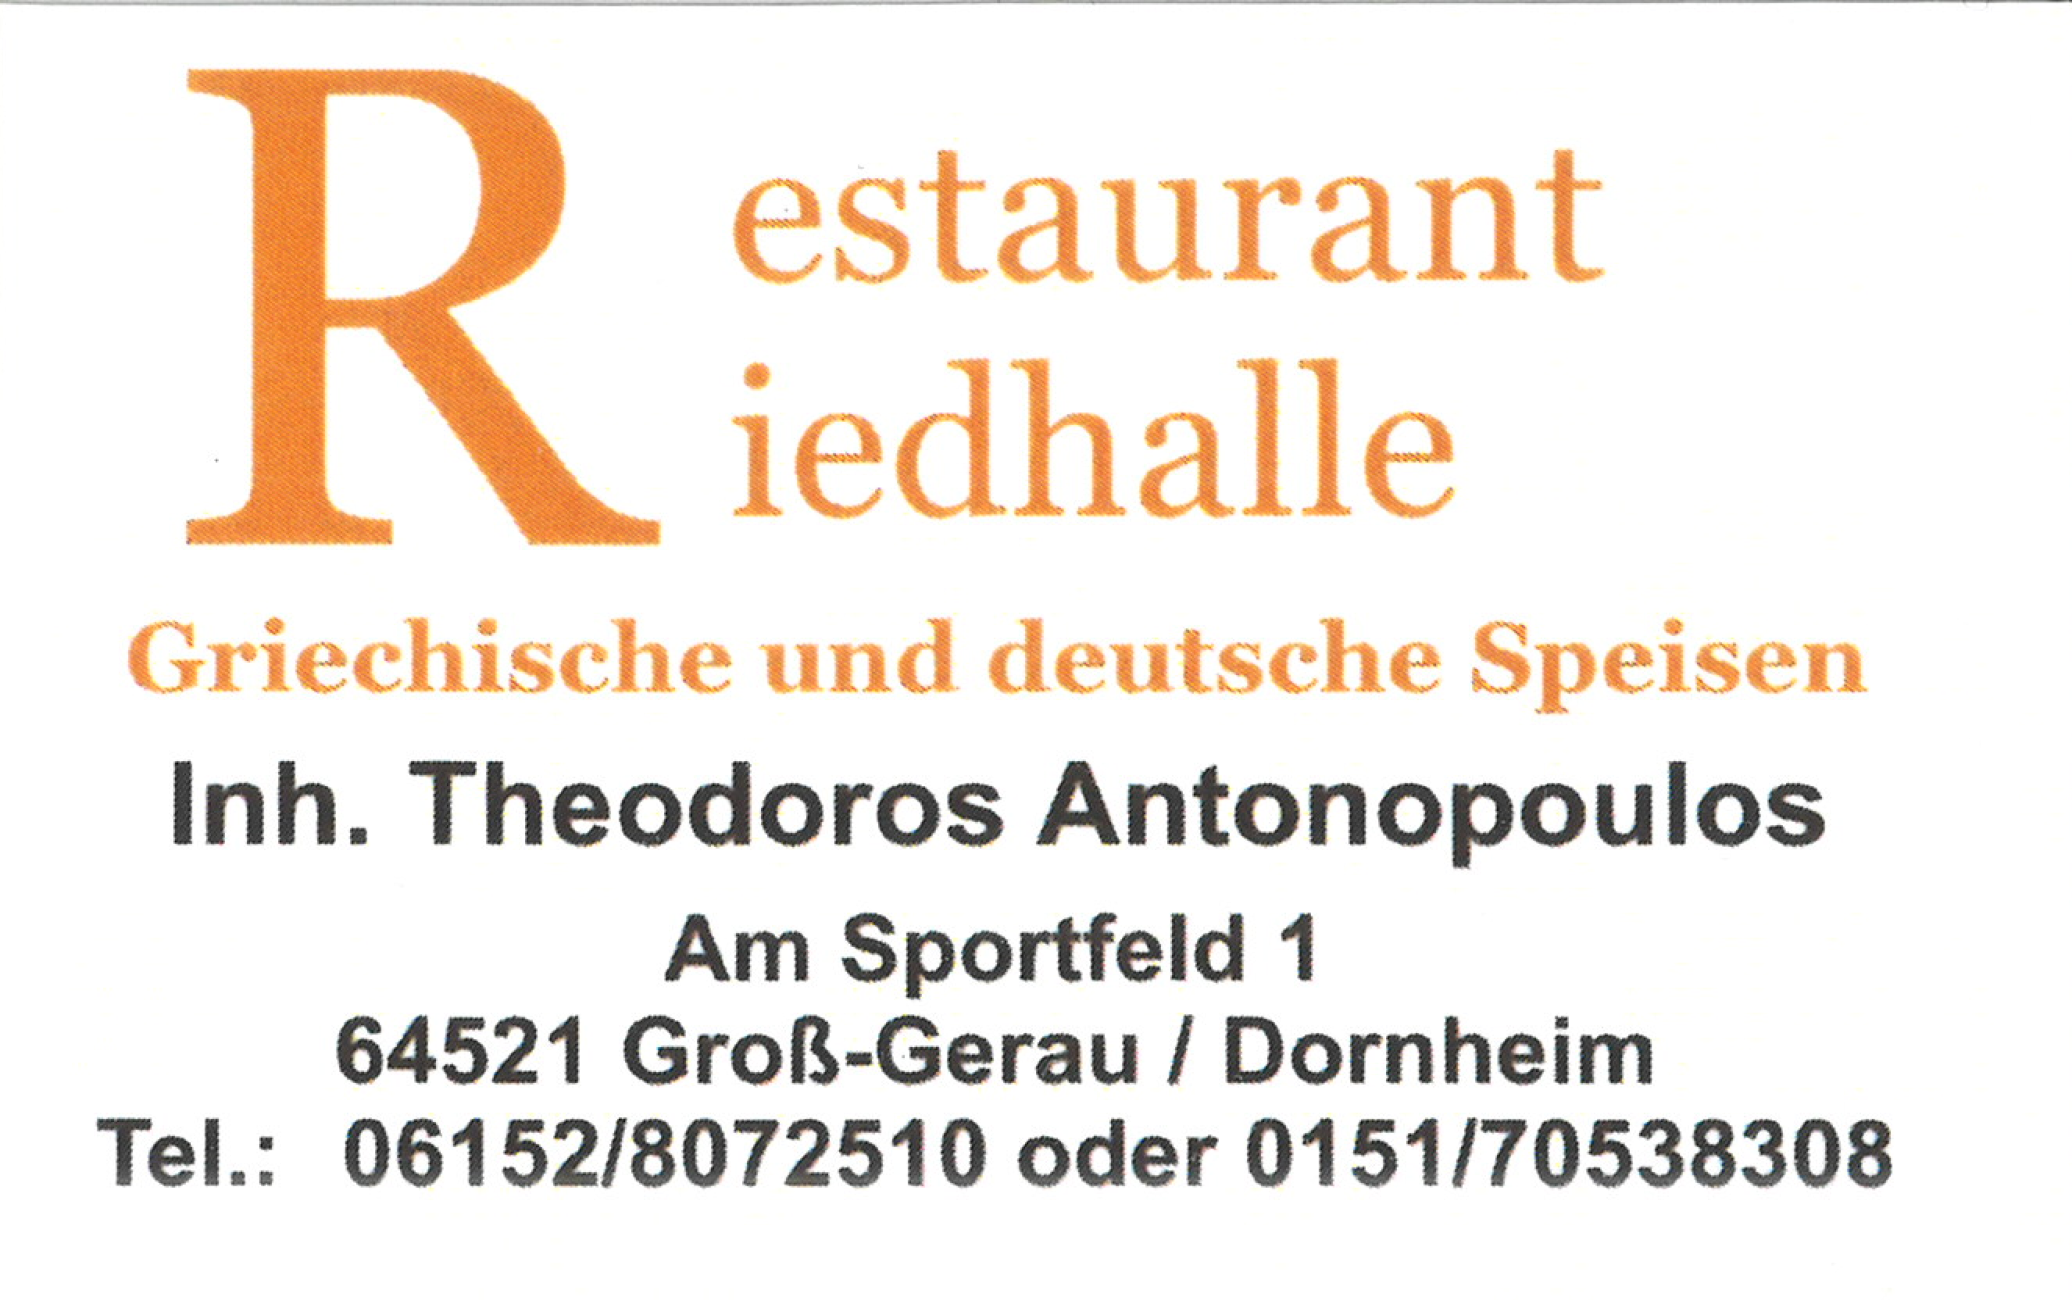 Riedhalle_1